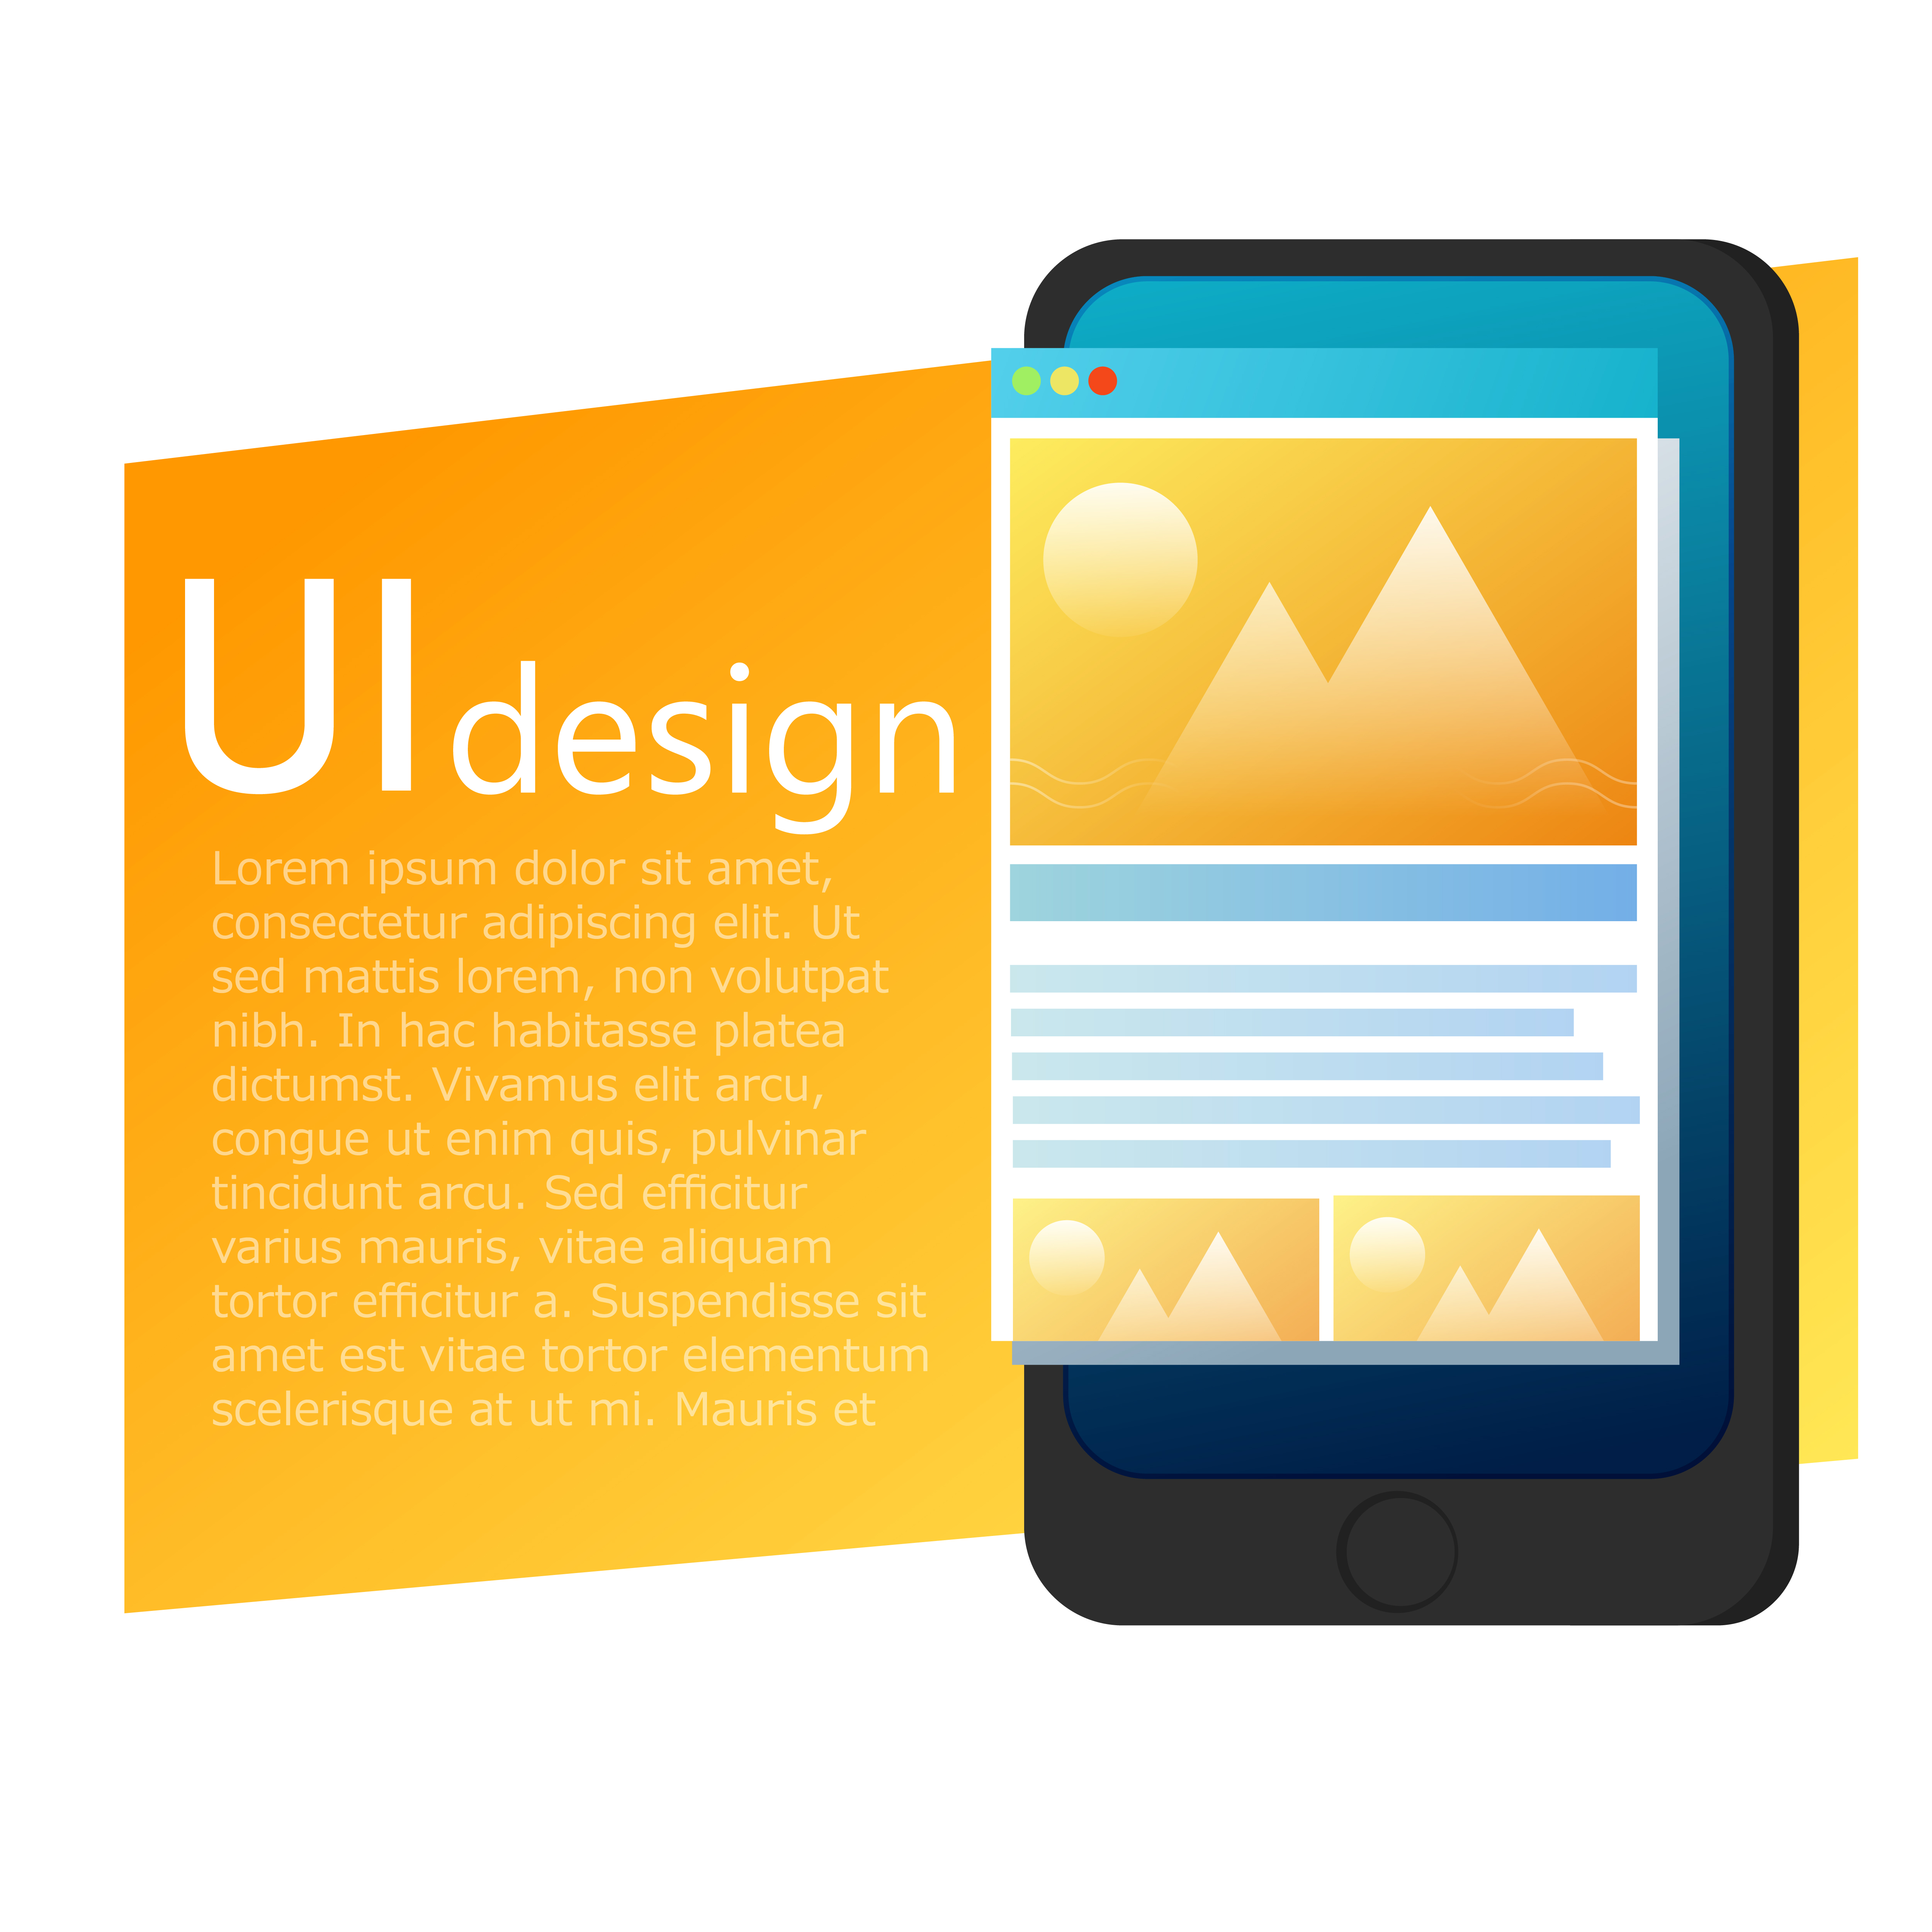 user interface design principles for mobile applications